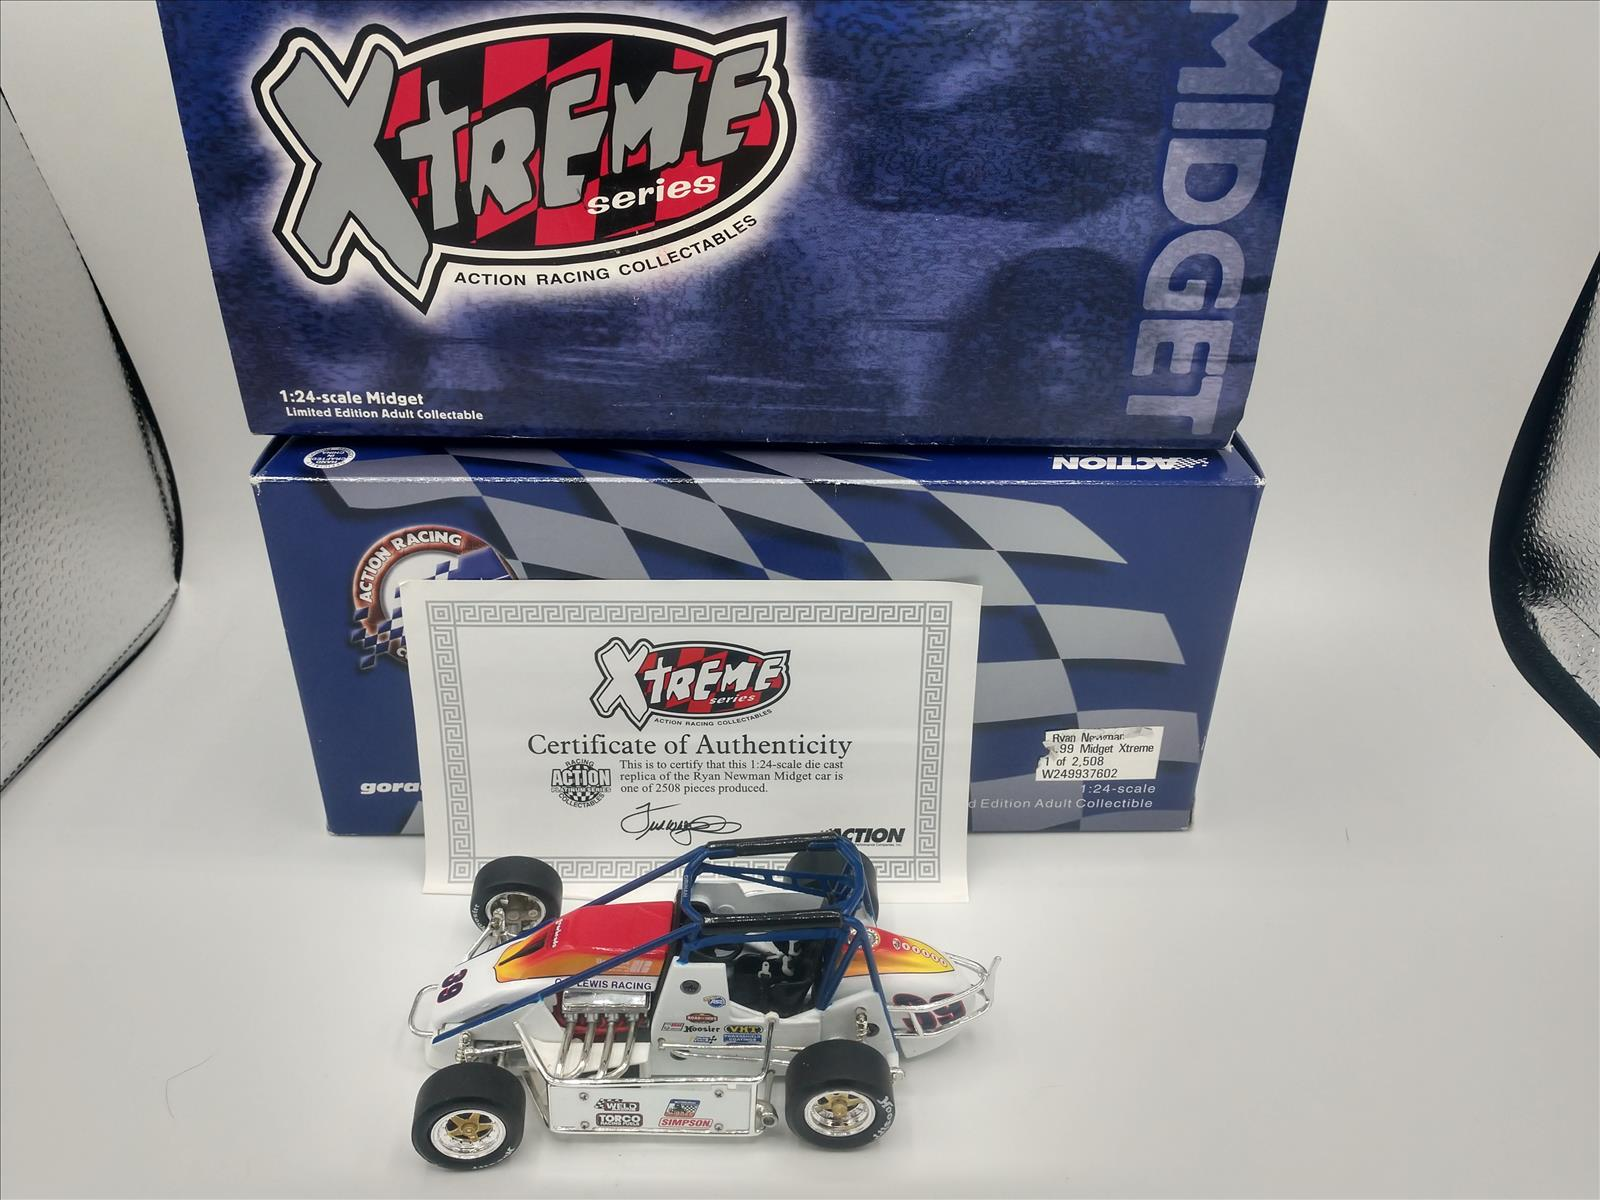 39 Ryan Newman Diecast 1999 Lewis Racing Gearheads USAC Silver Crown Midget Xtreme 1:24 Action ARC 1